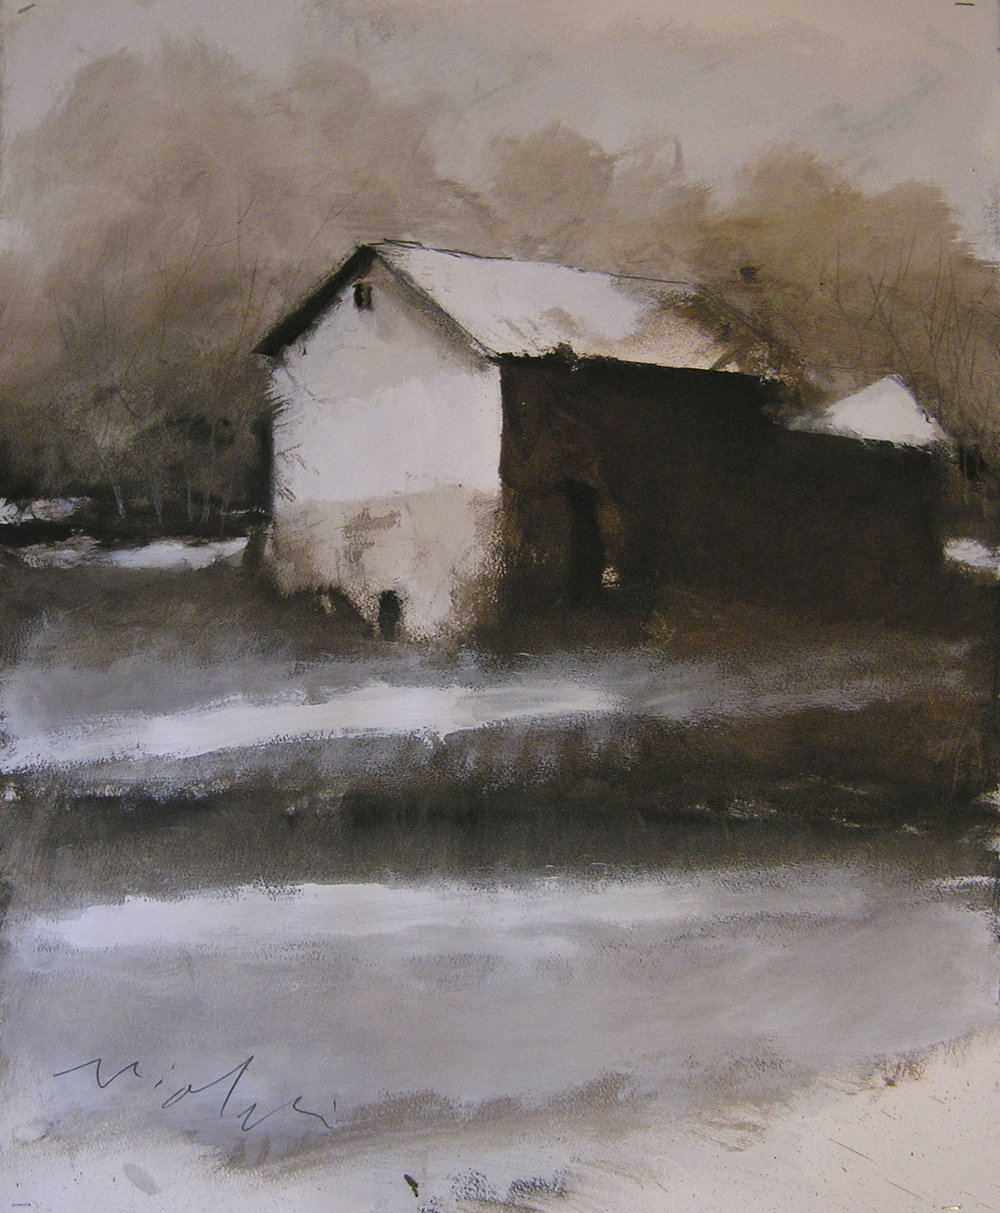 Edge of Frozen Pond,  30 x 22 inches, Oil on Paper